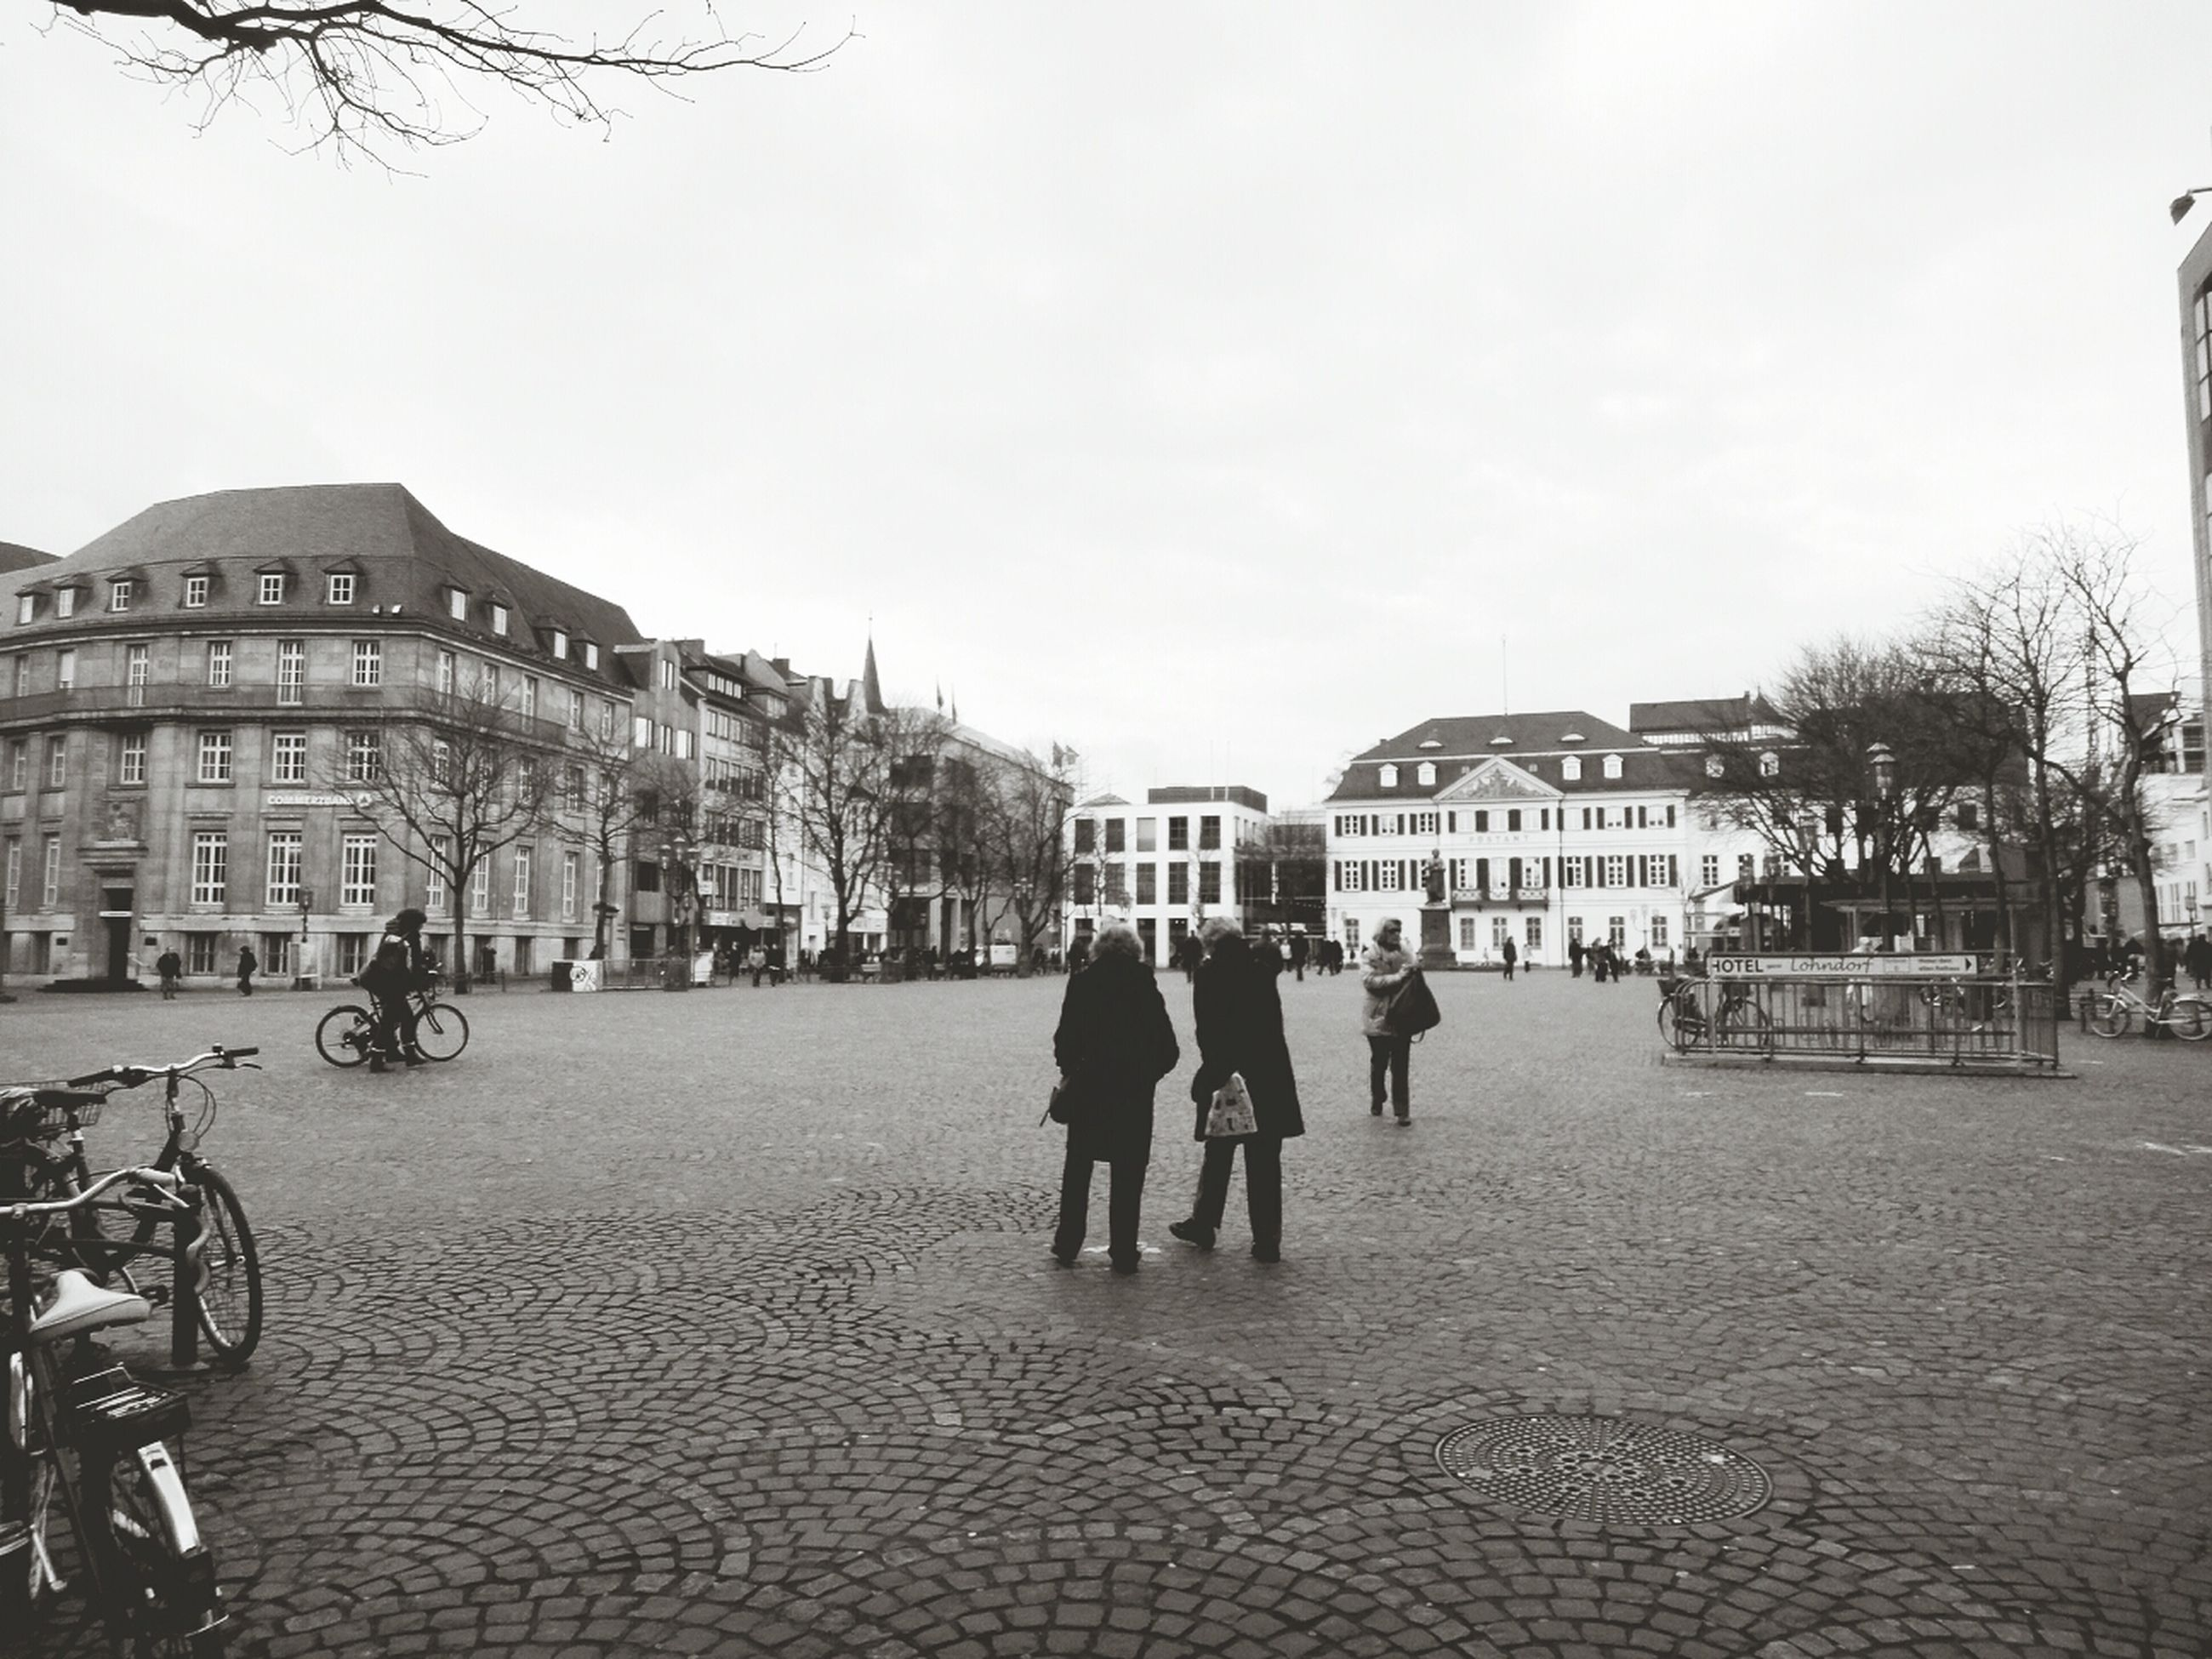 building exterior, architecture, built structure, walking, men, city, lifestyles, person, street, full length, city life, sky, leisure activity, cobblestone, large group of people, clear sky, bicycle, rear view, day